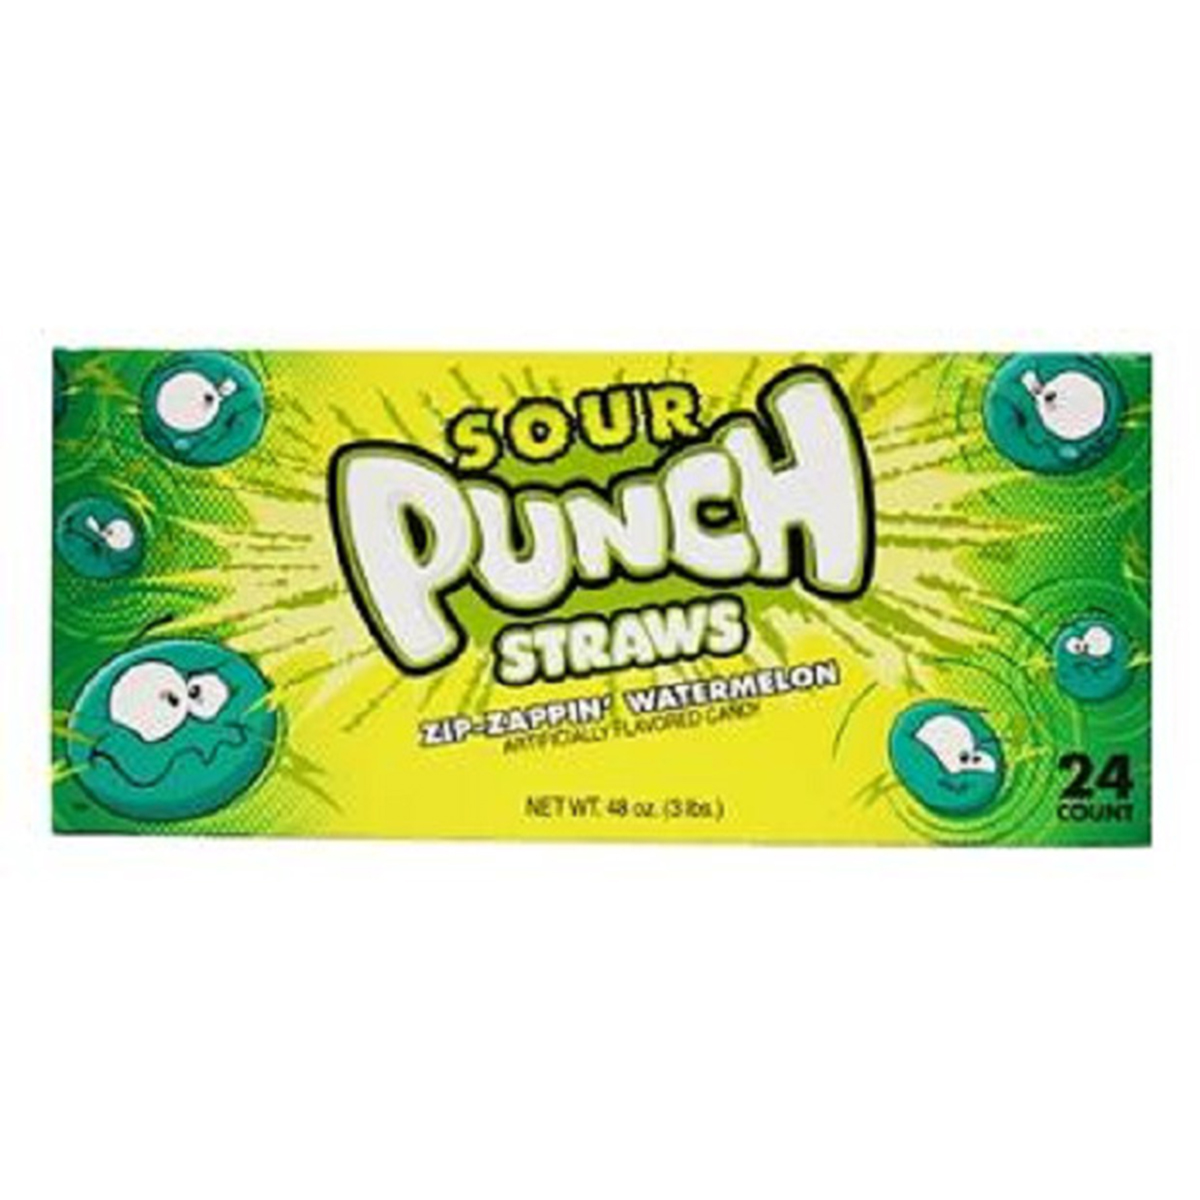 Product Of Sour Punch, Straws, Zip-Zappin Watermelon, Ct 24 (2 Oz) - Sugar Candy / Grab Varieties & Flavors